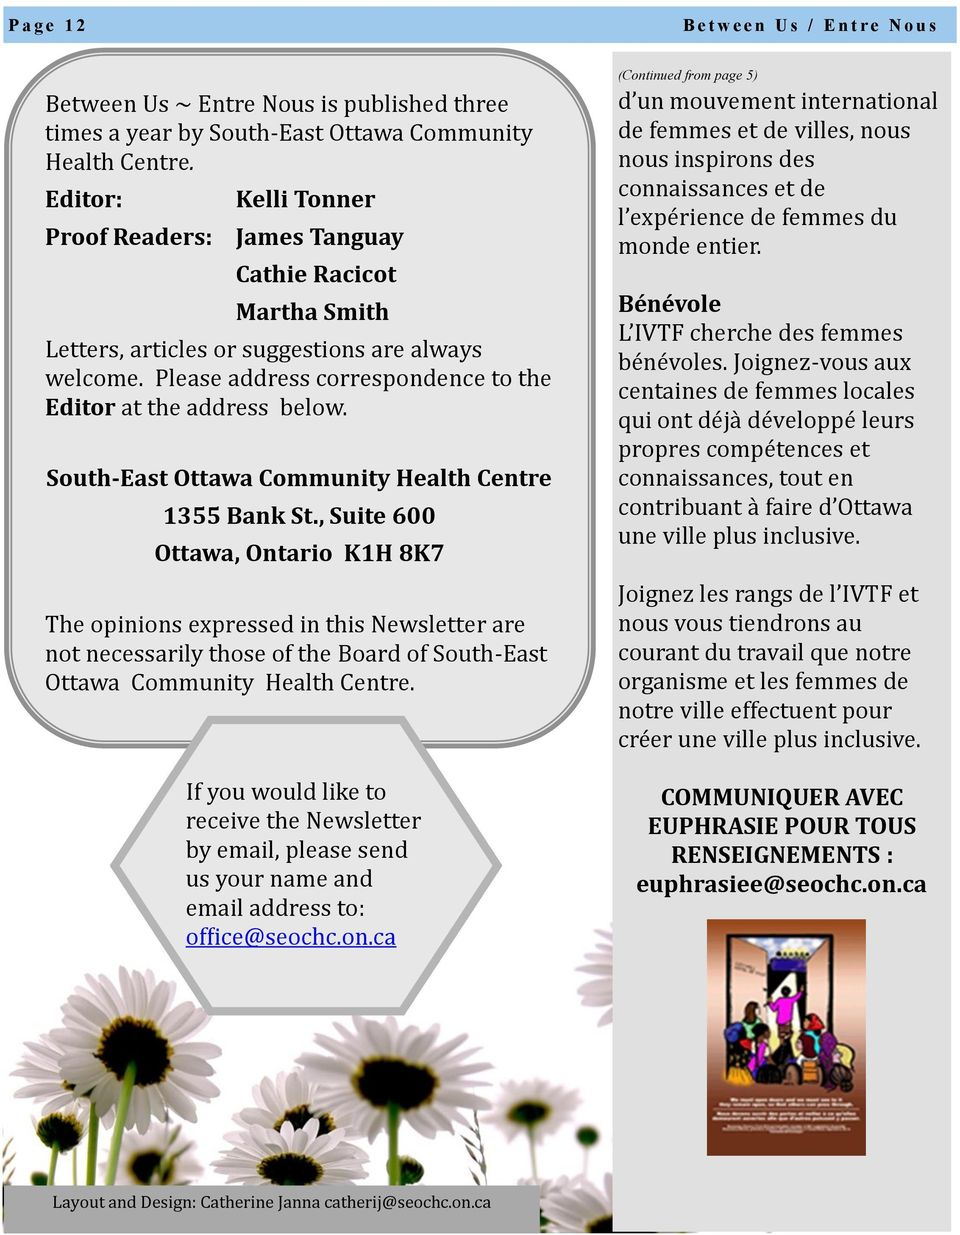 1355 Bank St., Suite 600 Ottawa, Ontario K1H 8K7 The opinions expressed in this Newsletter are not necessarily those of the Board of South-East Ottawa Community Health Centre.